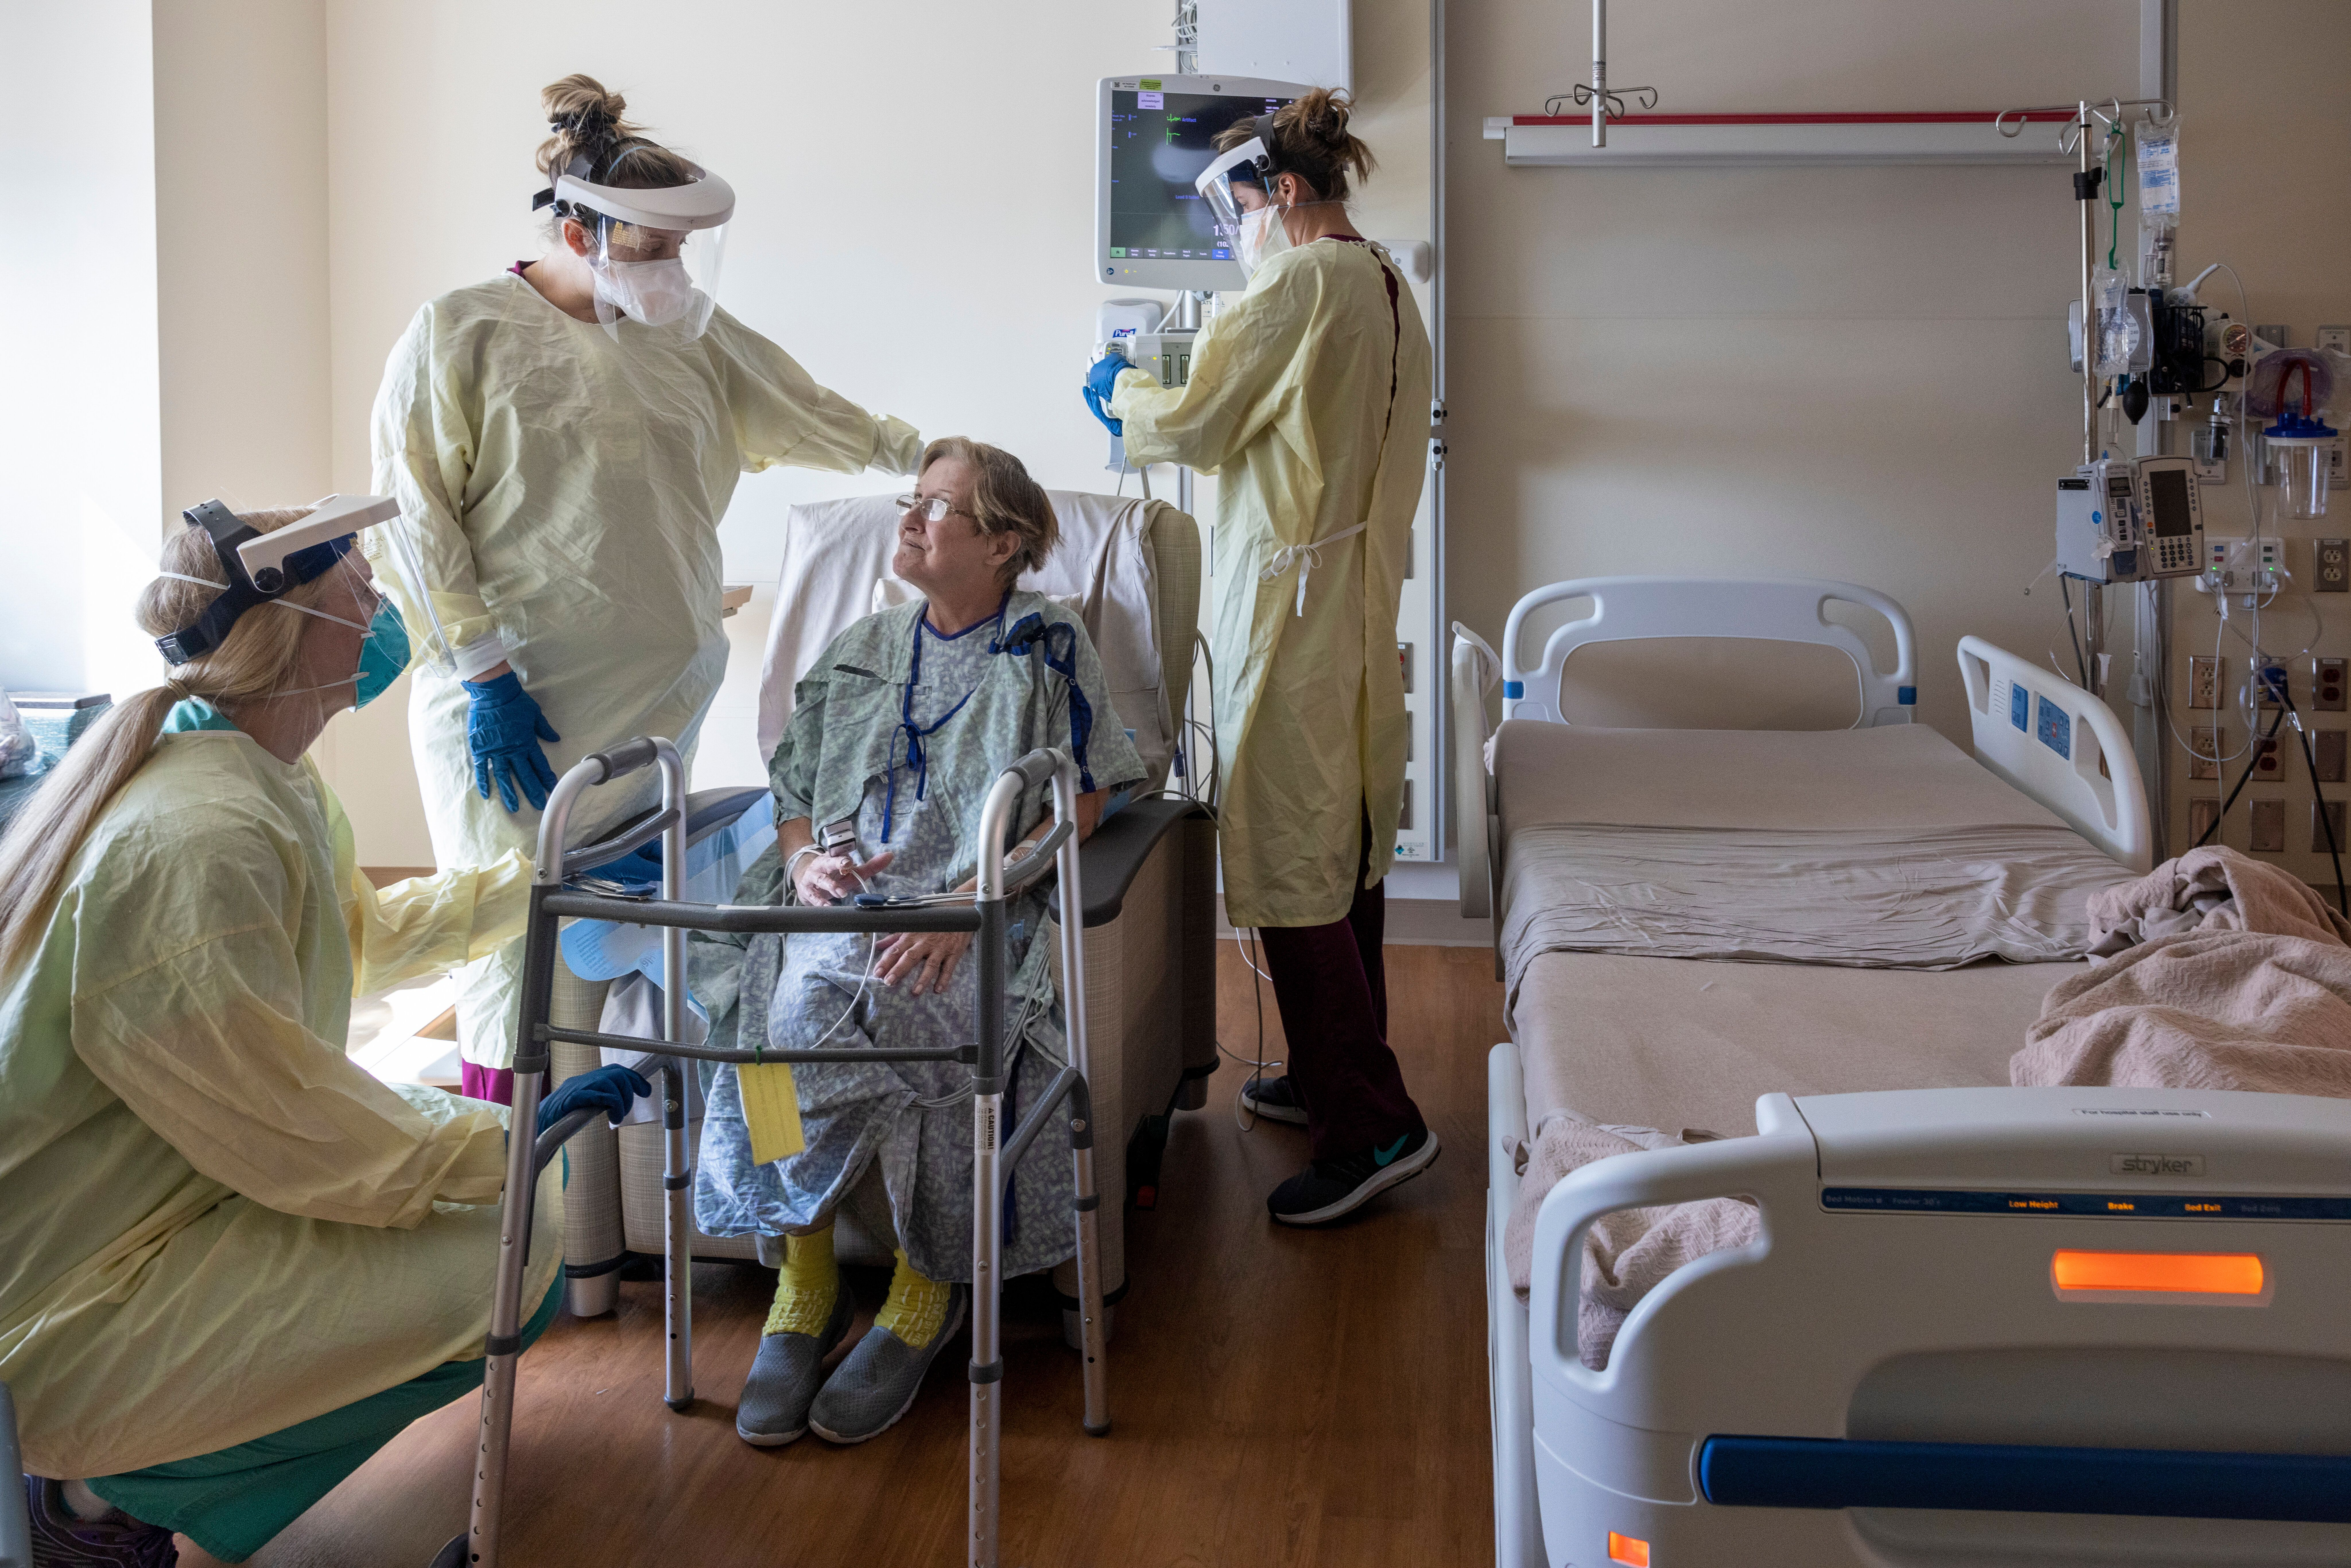 A COVID-19 patient is seen being treated at the Ochsner Medical Center in Jefferson, La. The state's hospitals, already packe